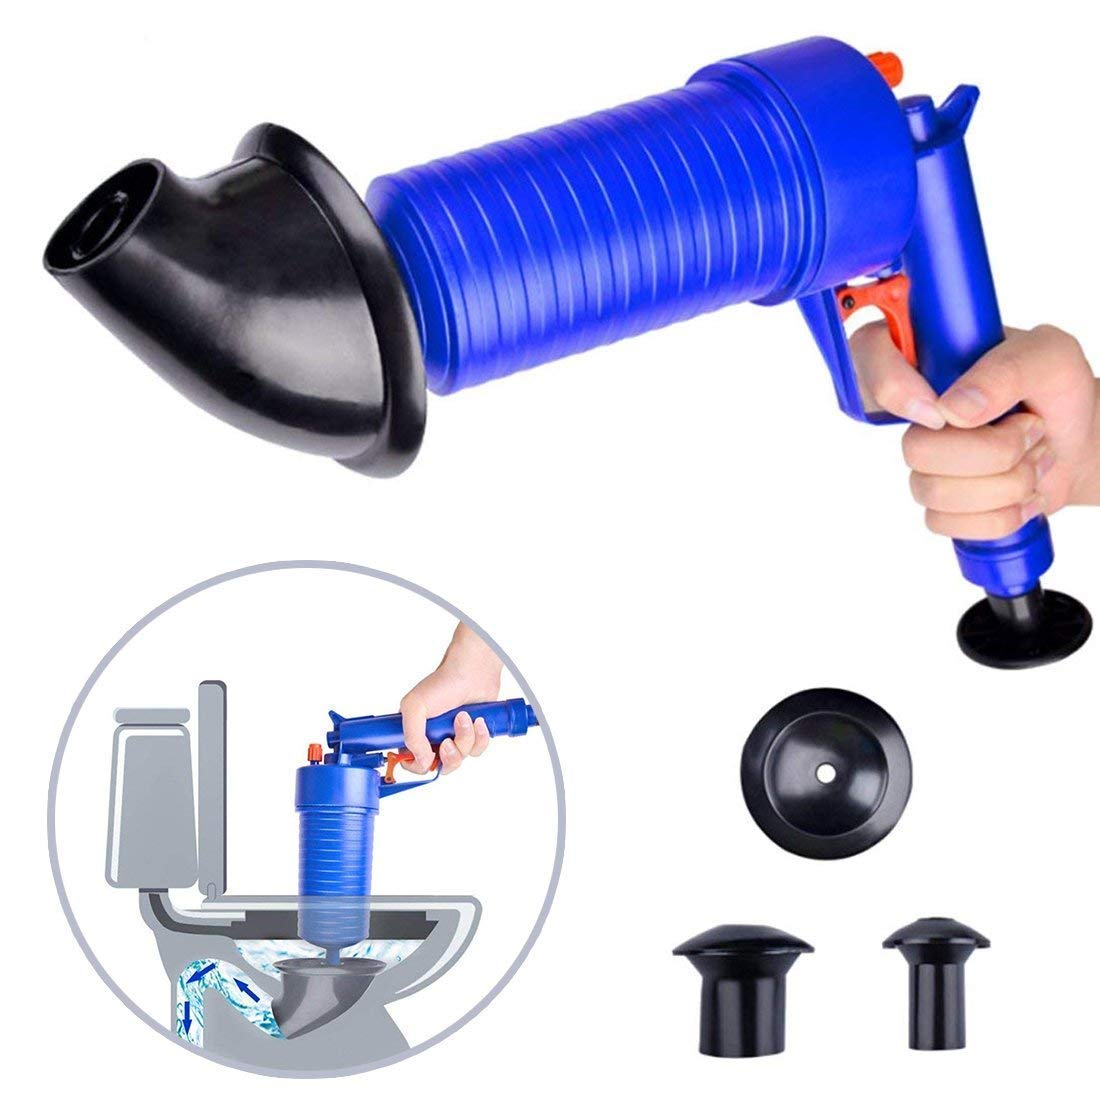 Bathtub Shower Powerful Drain Plunger with 1 Type Suction Cups Sink Suitable for Toilet Liumei Toilet Air Plunger